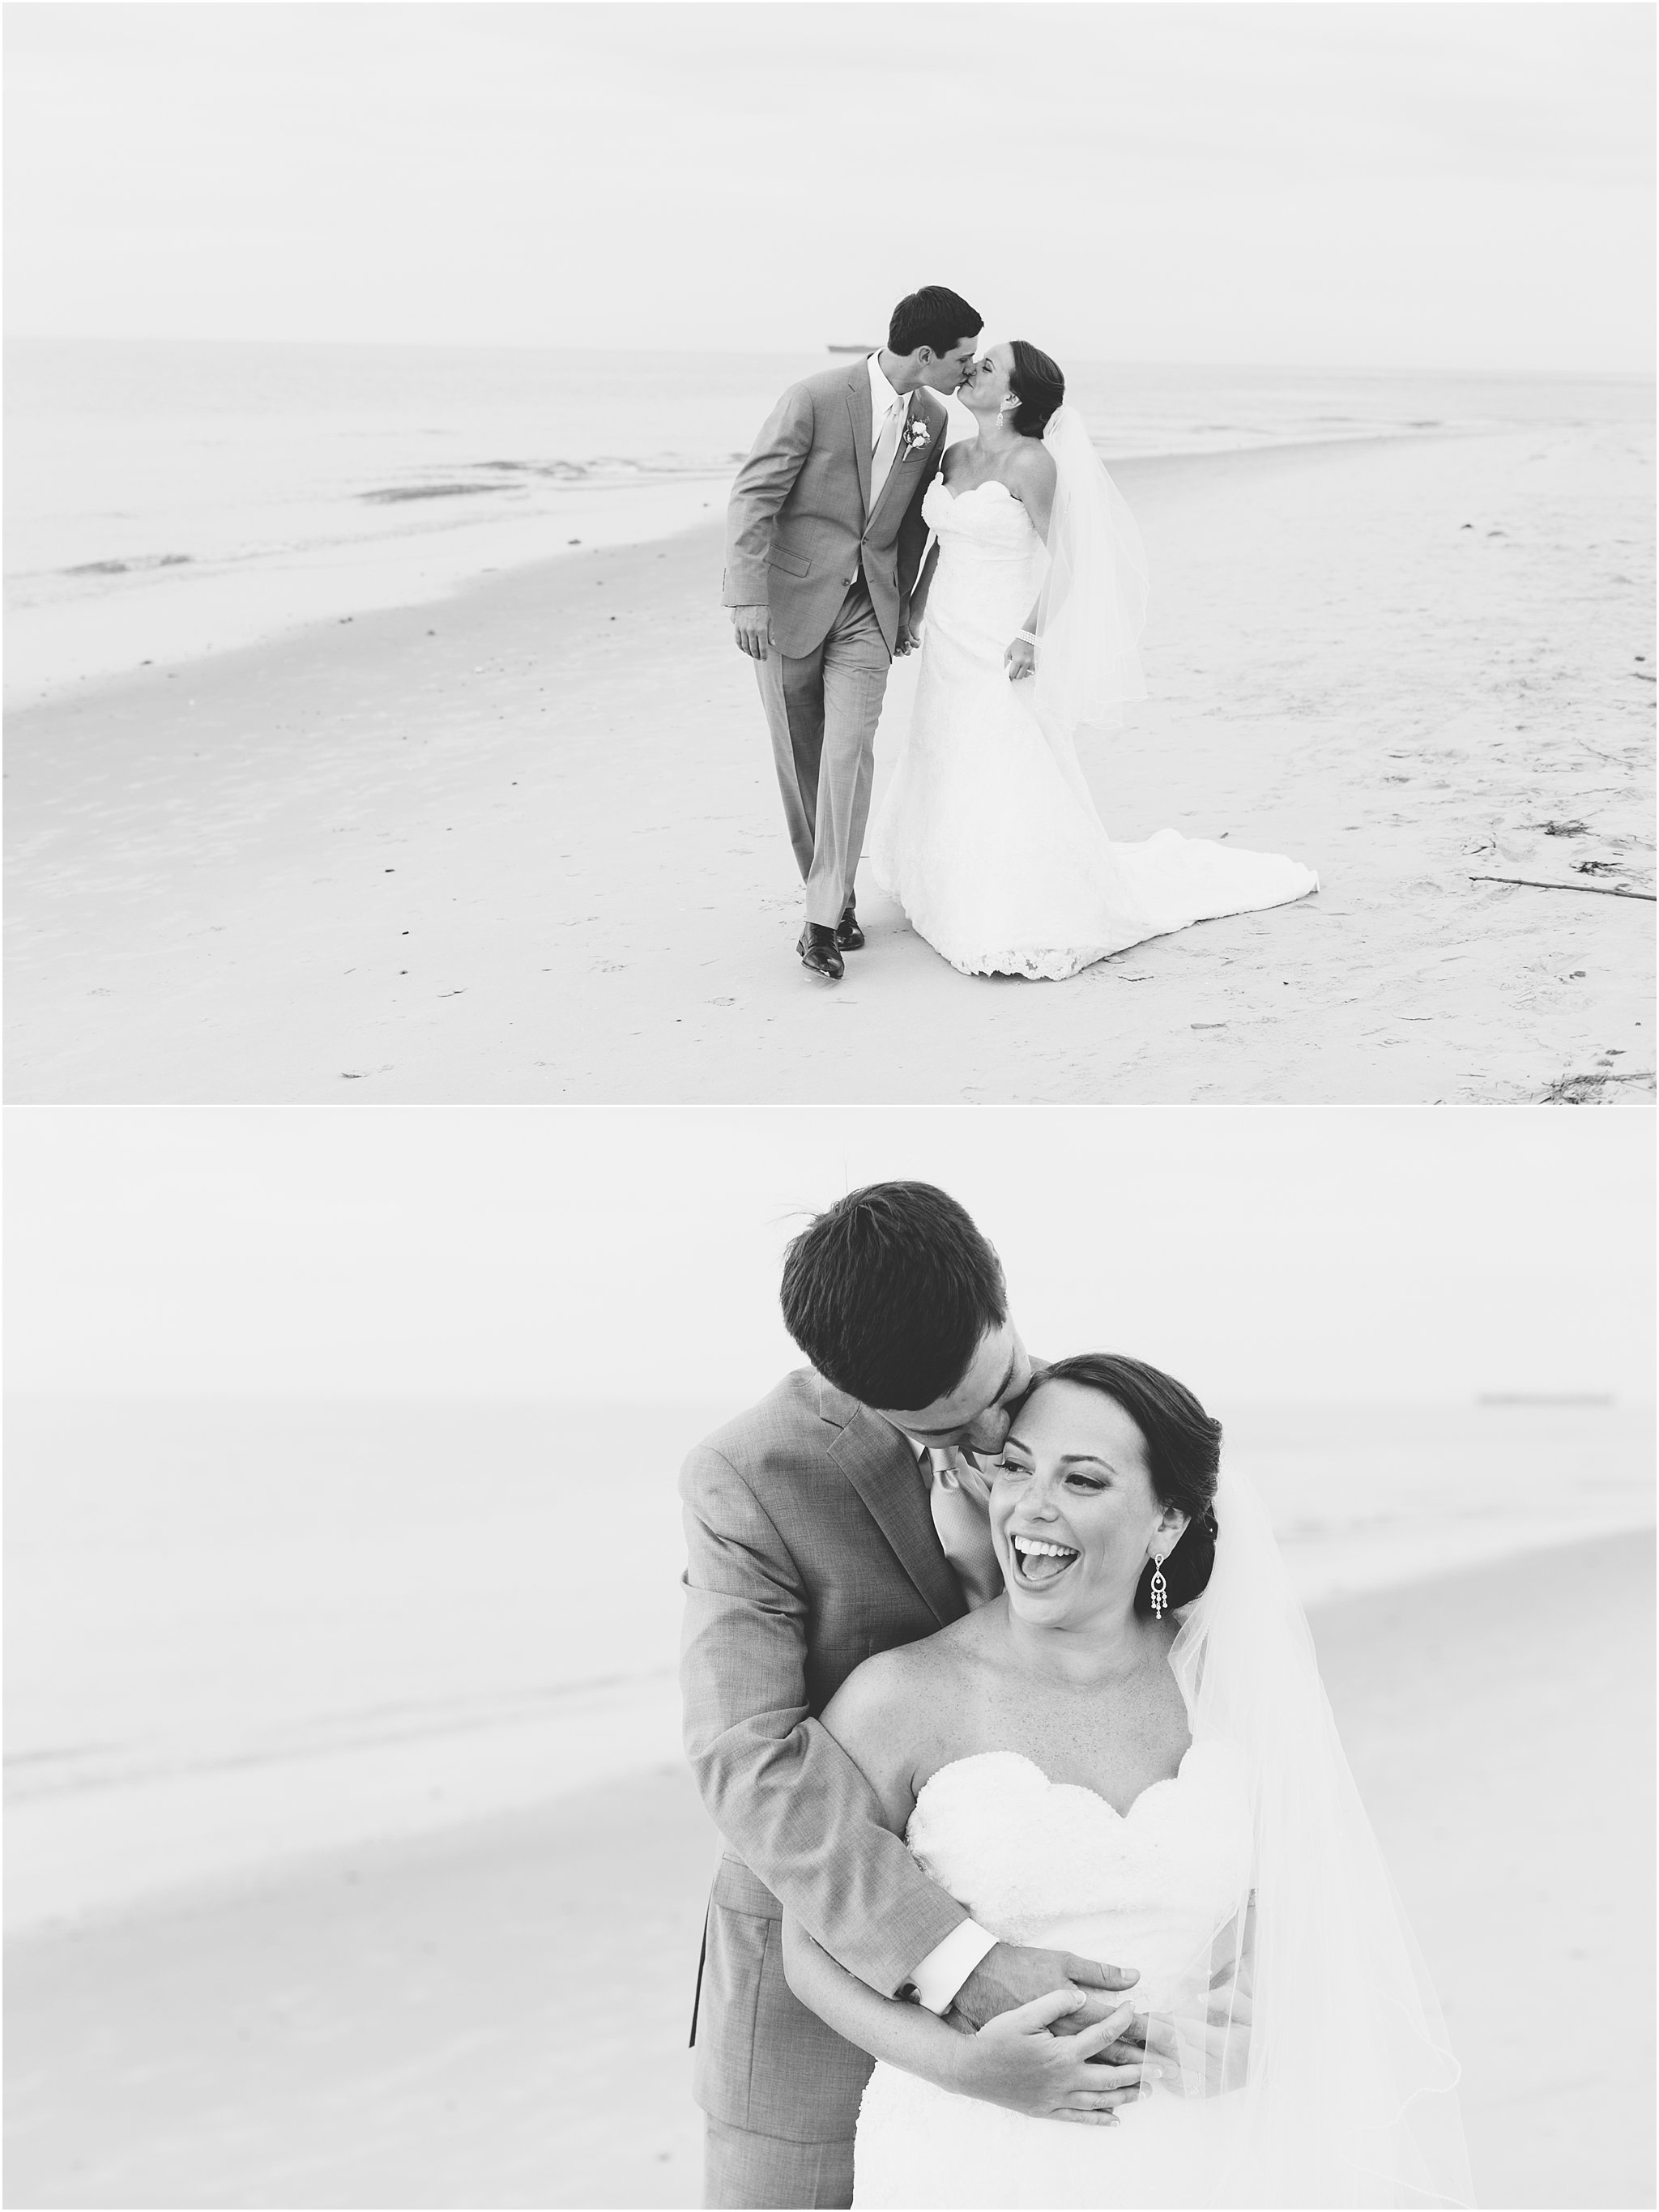 jessica_ryan_photography_wedding_photography_virginiabeach_virginia_candid_authentic_wedding_portraits_marina_shores_yacht_club_chesapeake_bay_1882